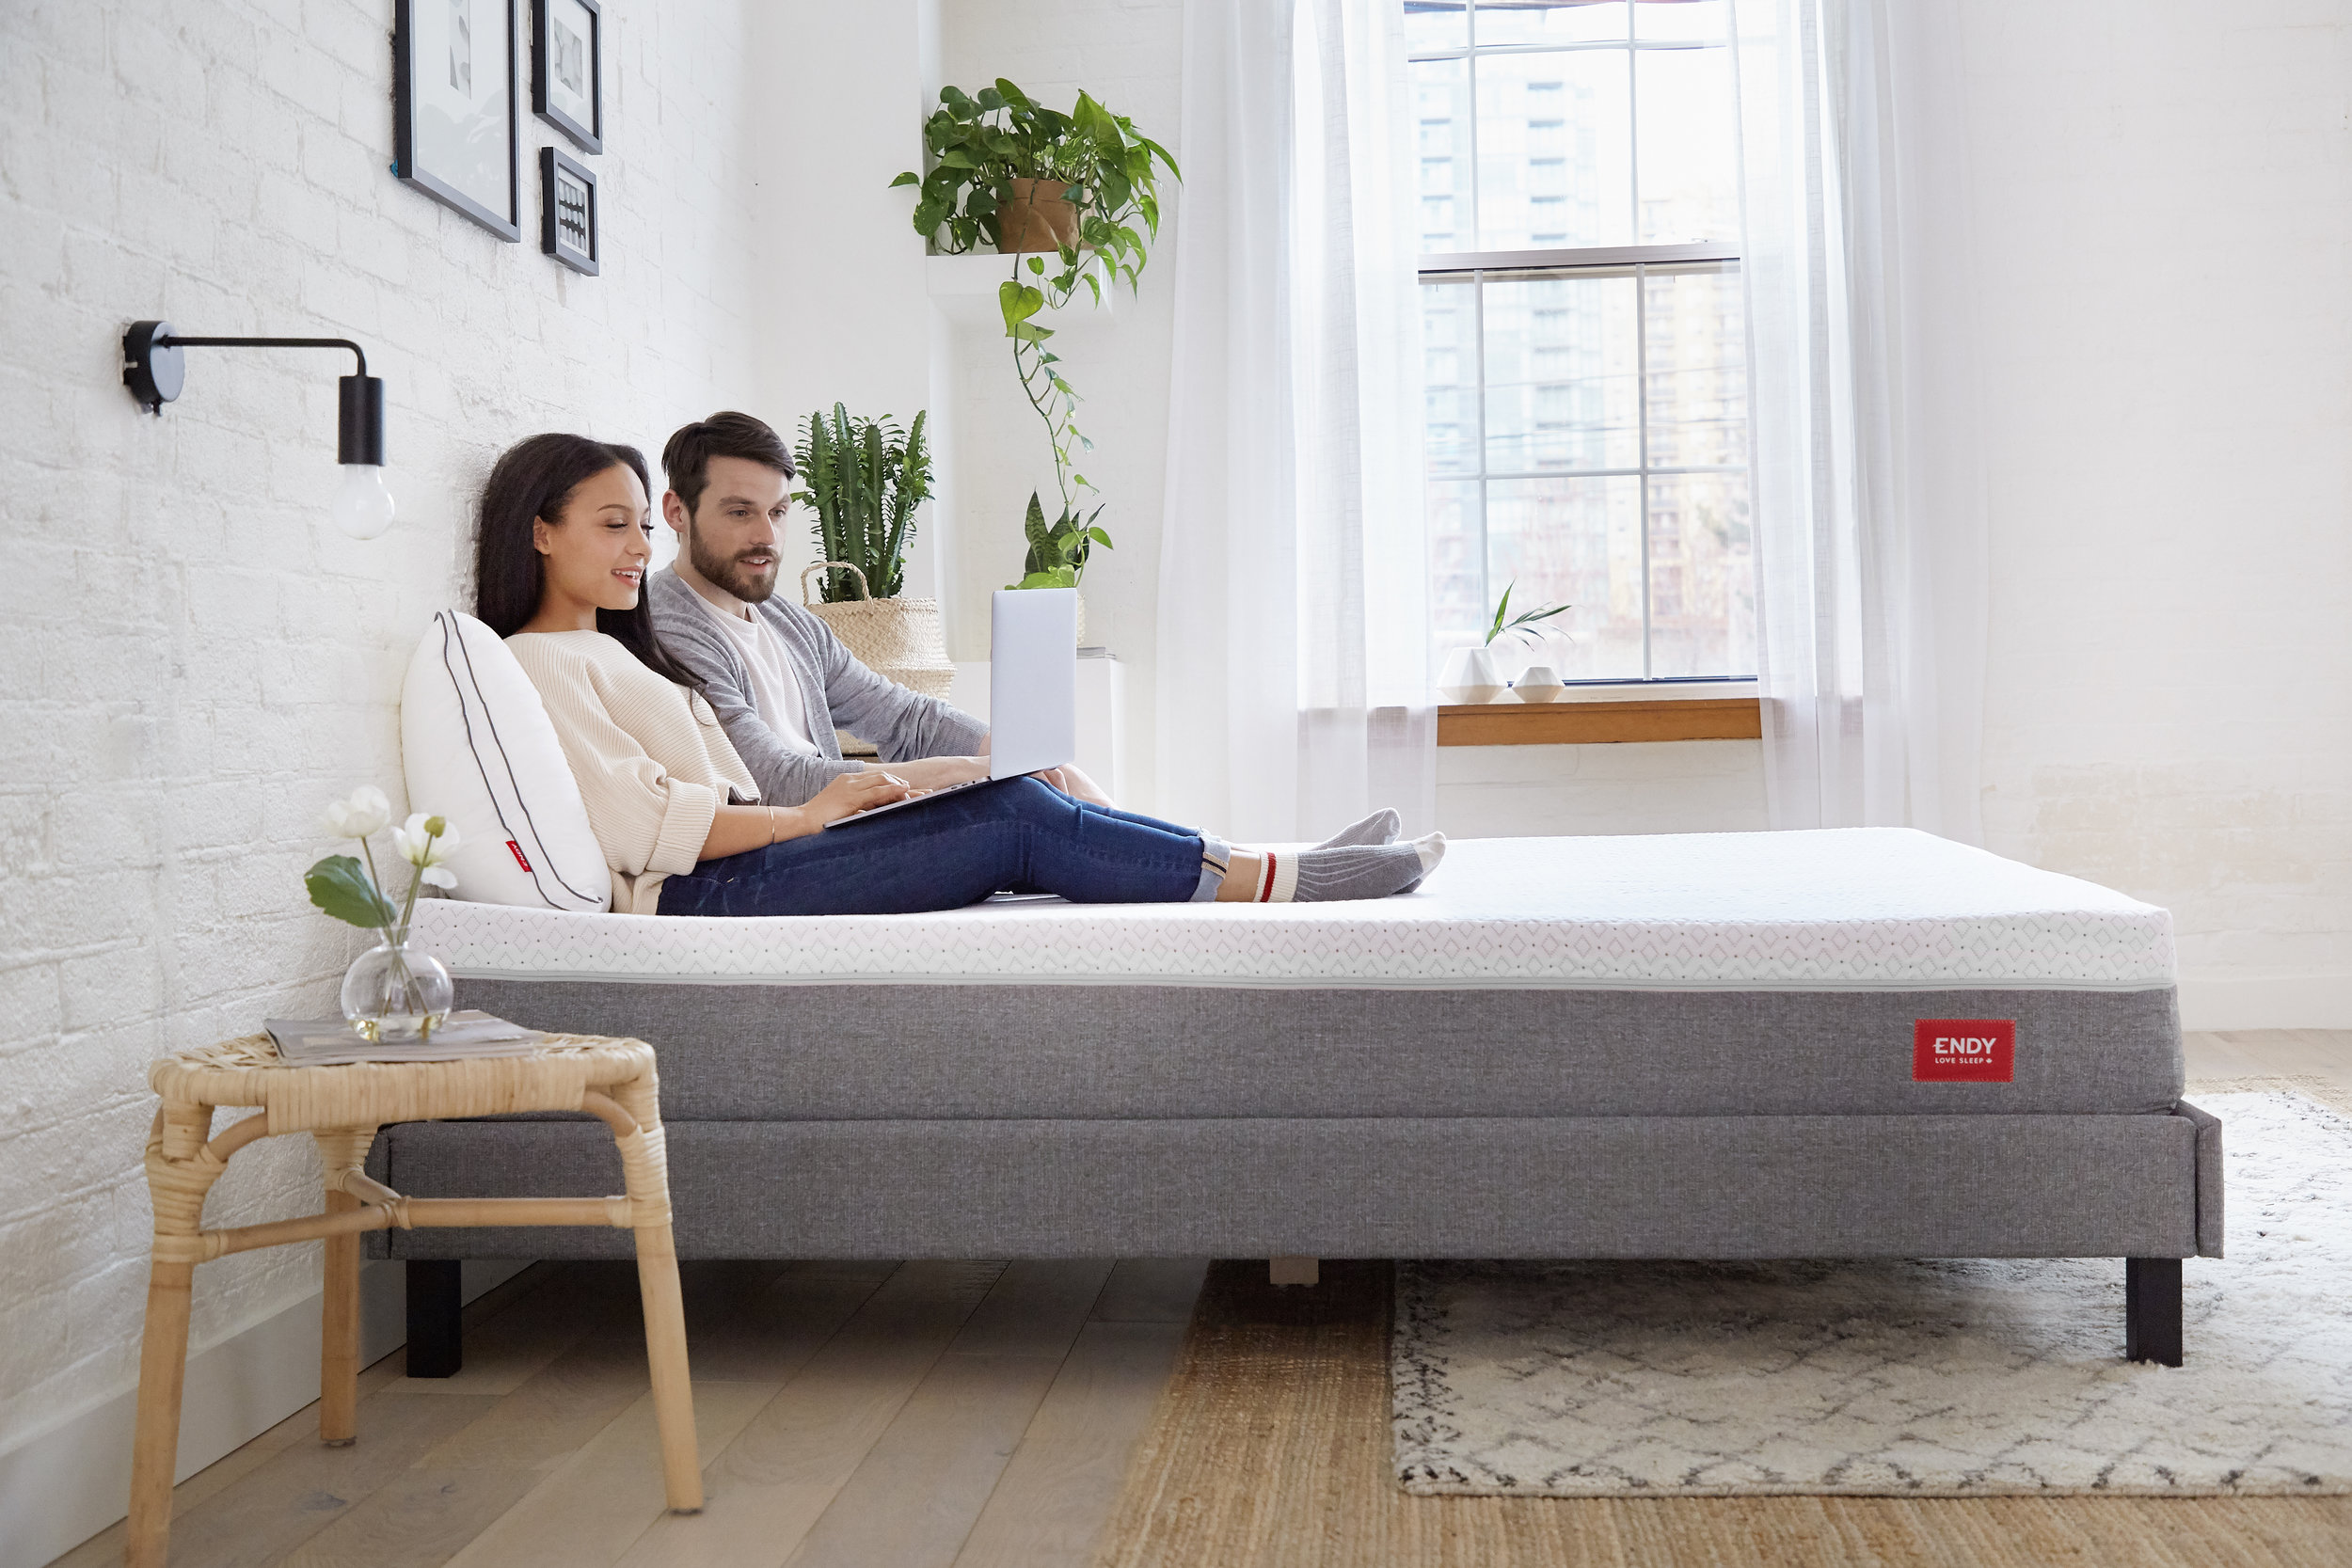 ENDY_BEDFRAME_W_PRODUCT_SUITE_COUPLE_5.jpg